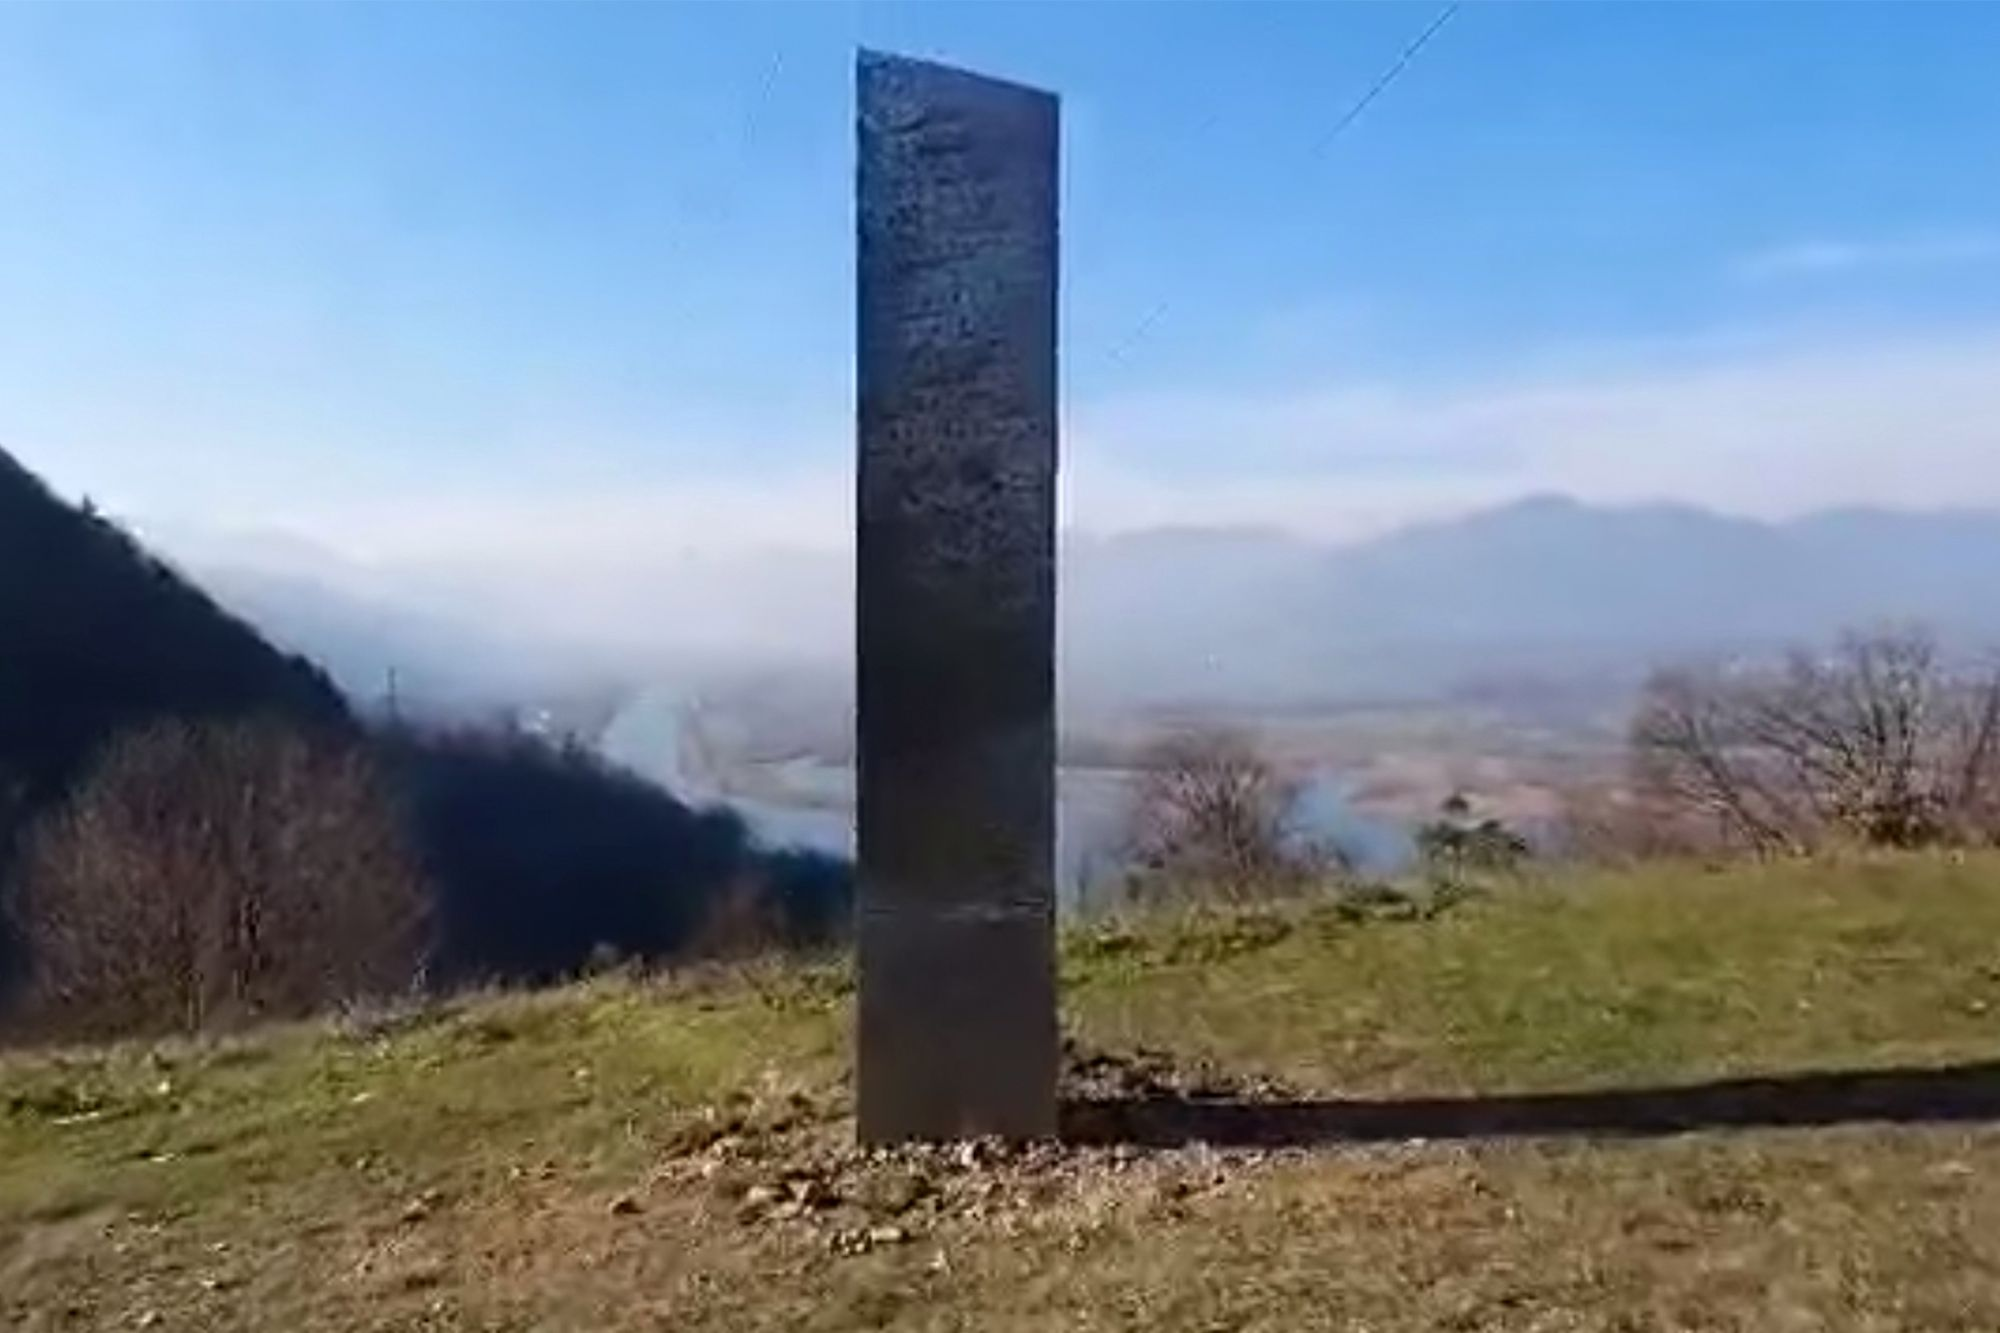 As 2020 isn't over yet, mysterious monoliths started appearing on the faces of the Earth